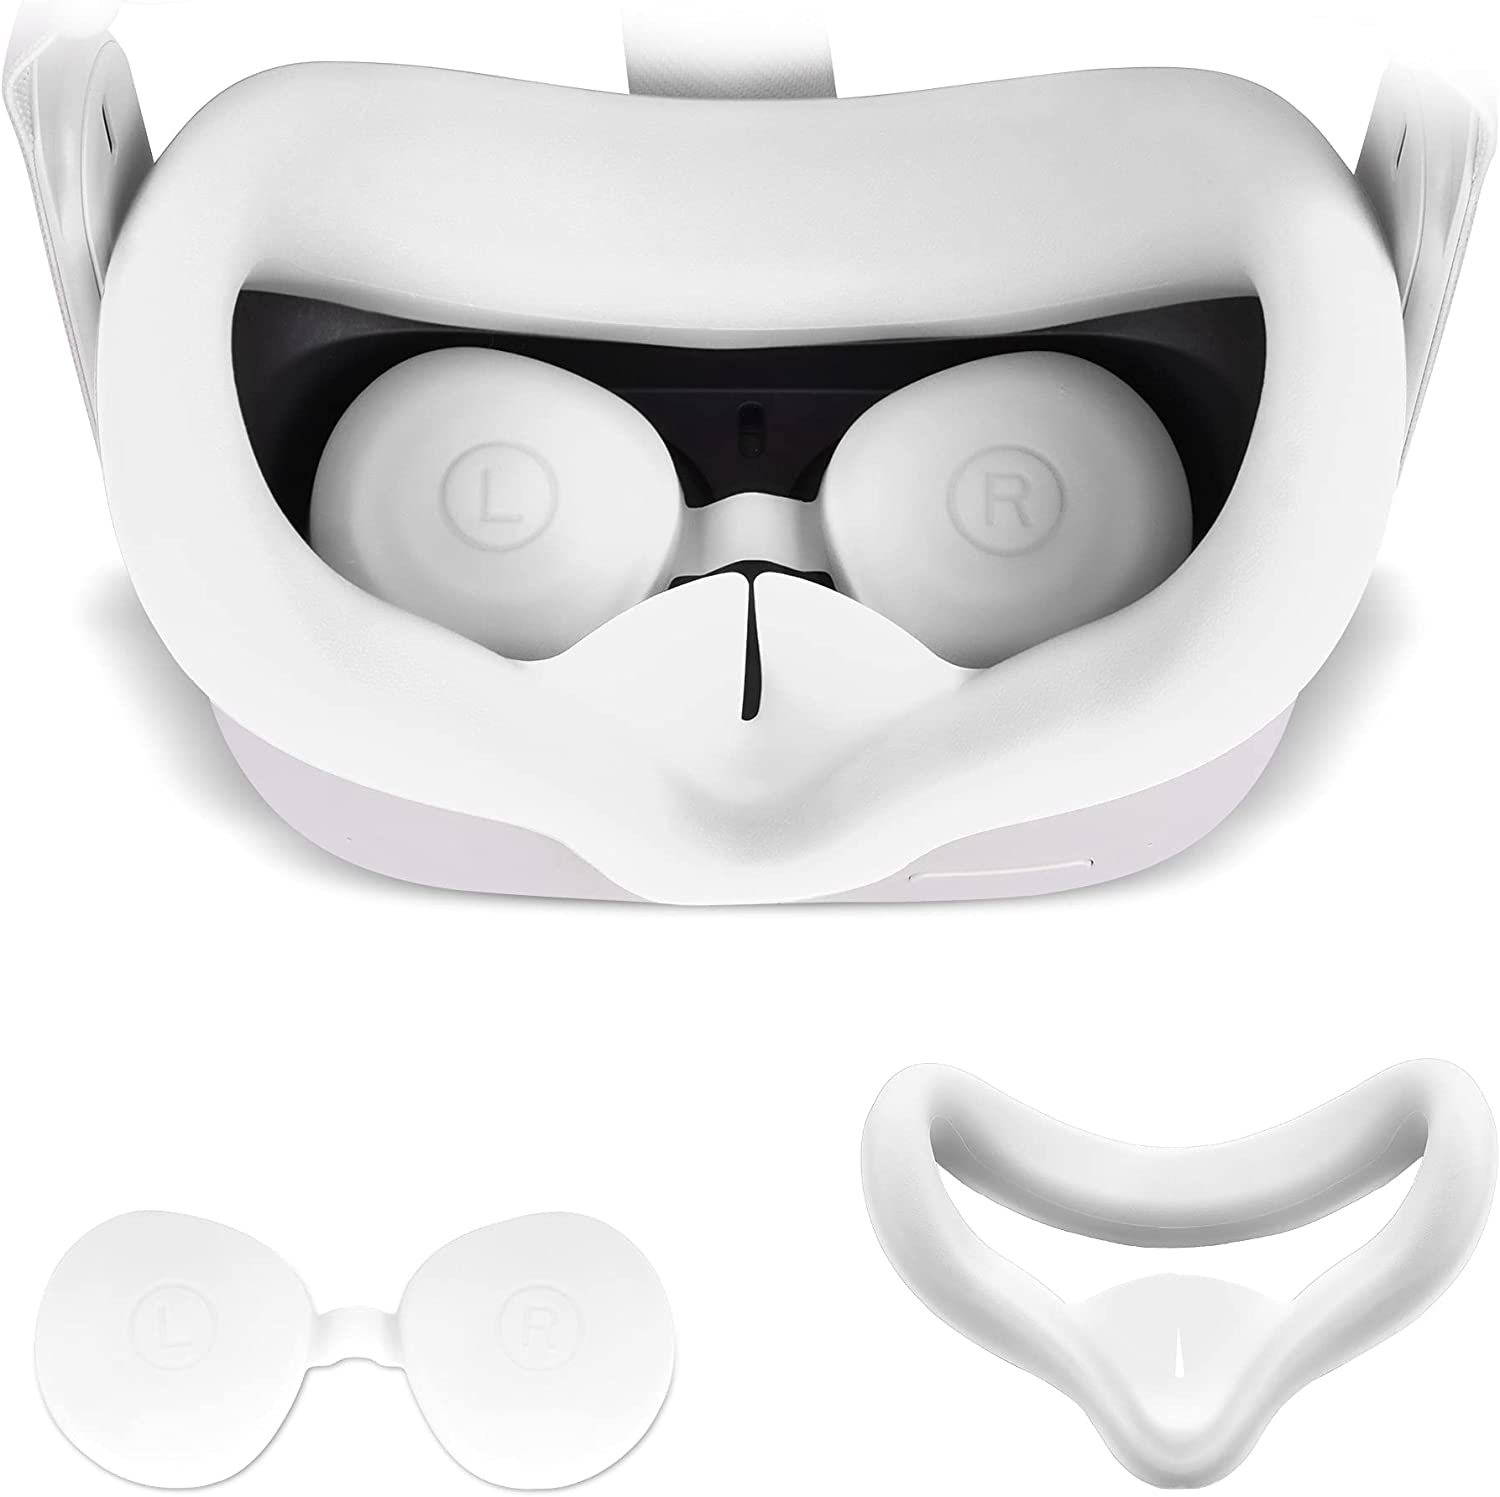 TAACOO VR Silicone Face Cover with Protective Lens Cover for Oculus Quest 2 Washable Cushion Cover Sweatproof & Lightproof (White)